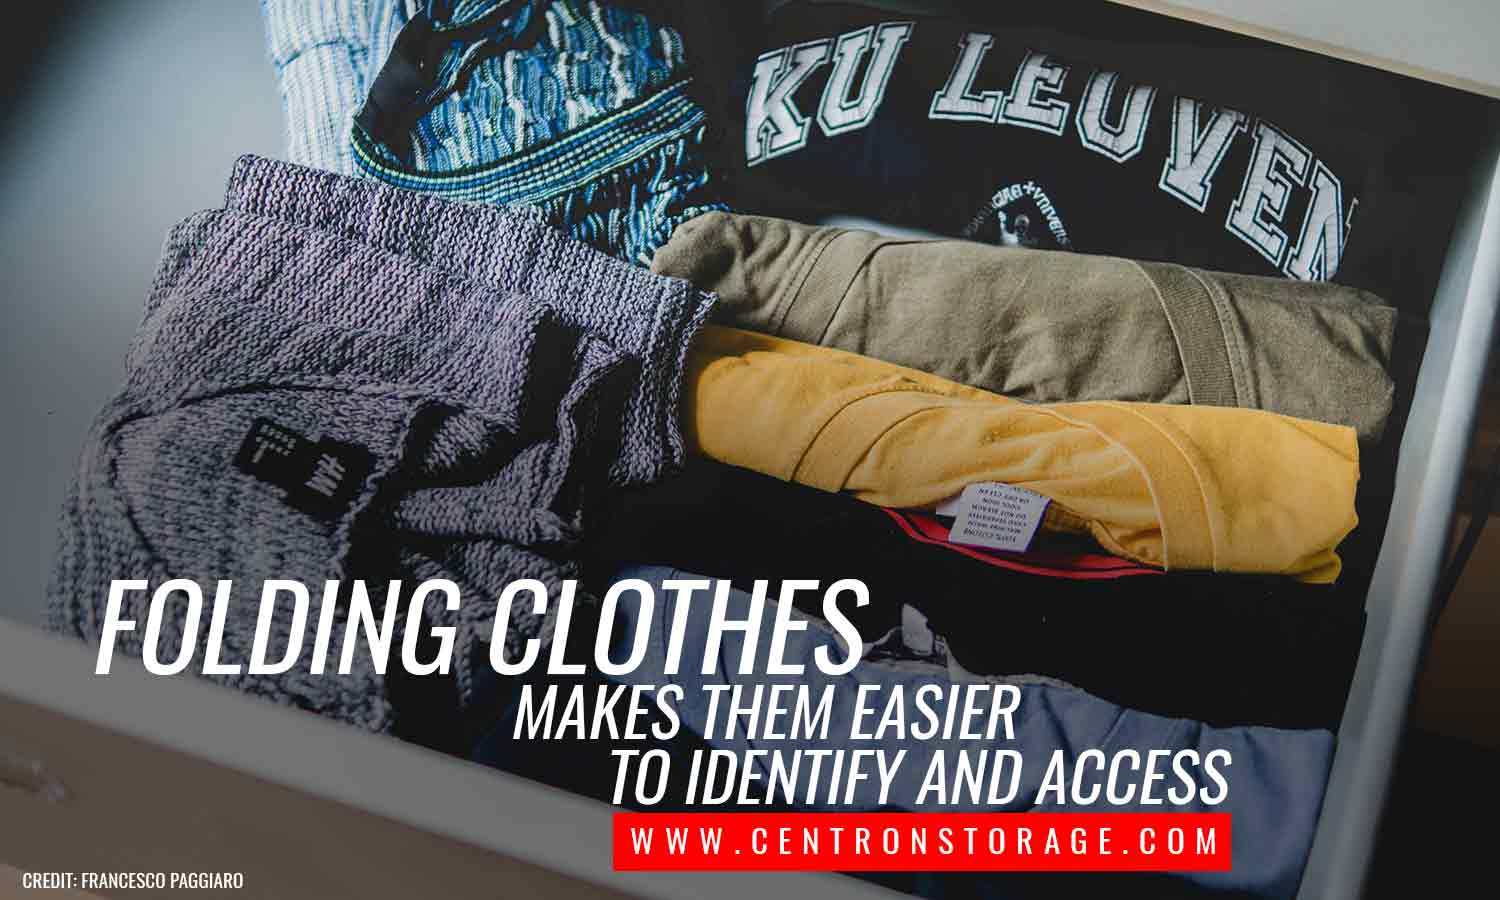 Folding clothes makes them easier to identify and access